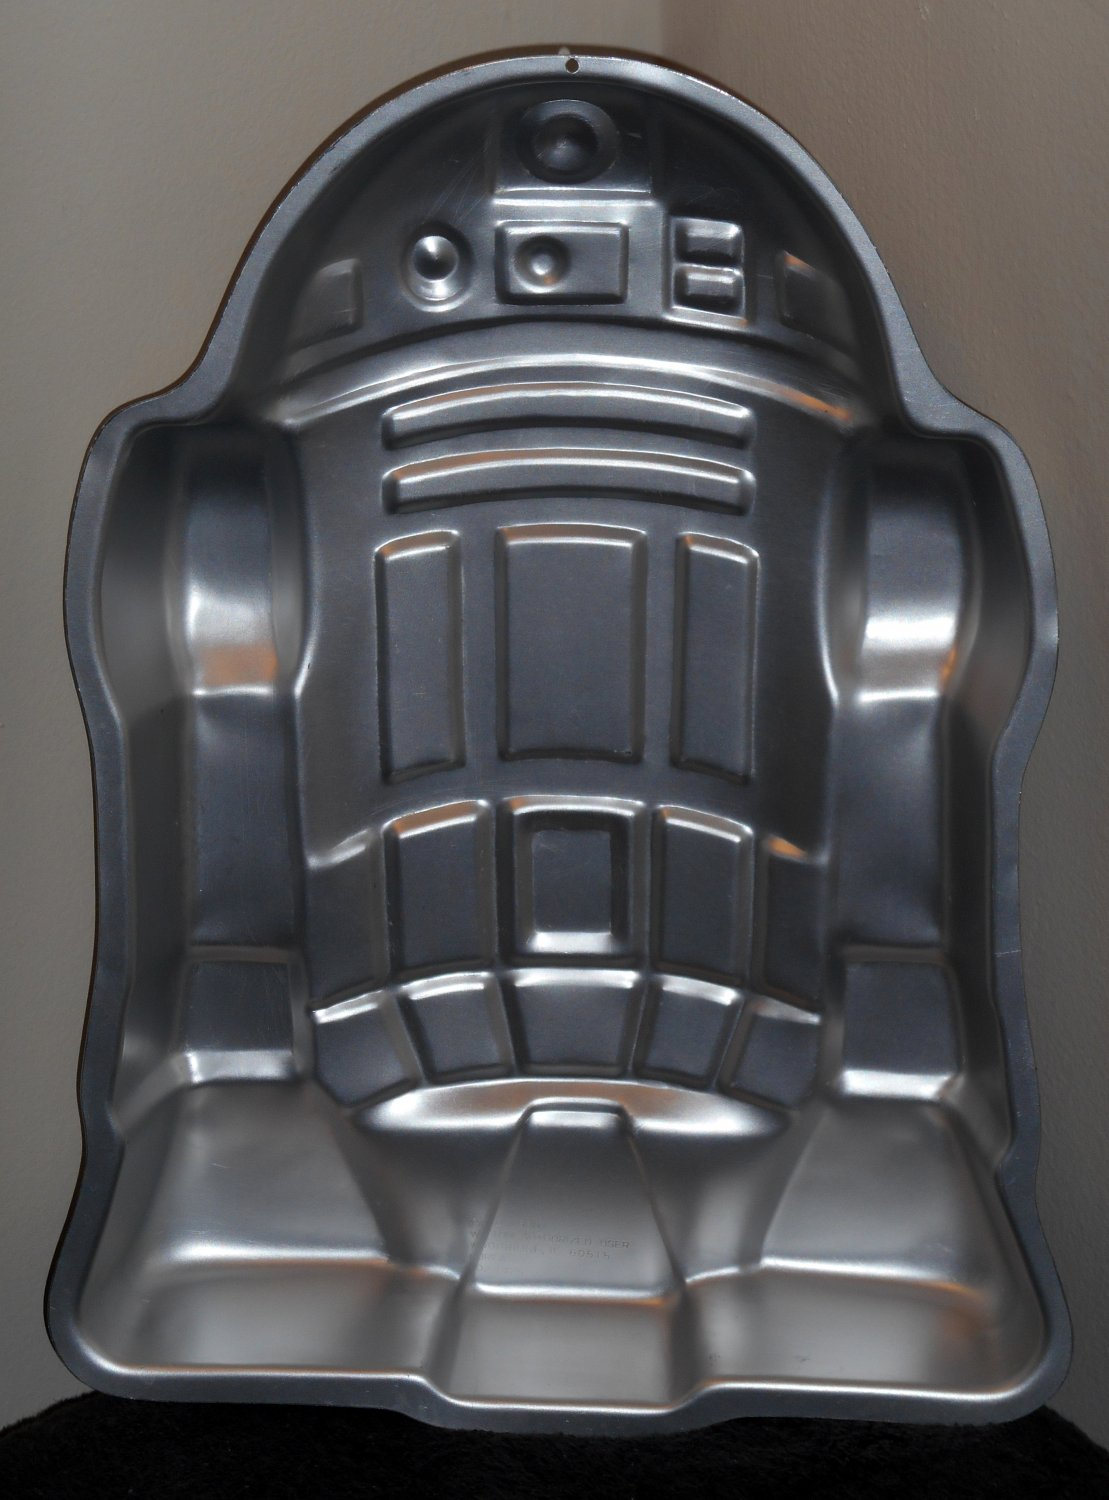 Sold Out Wilton Aluminum Cake Pan Star Wars R2 D2 Droid